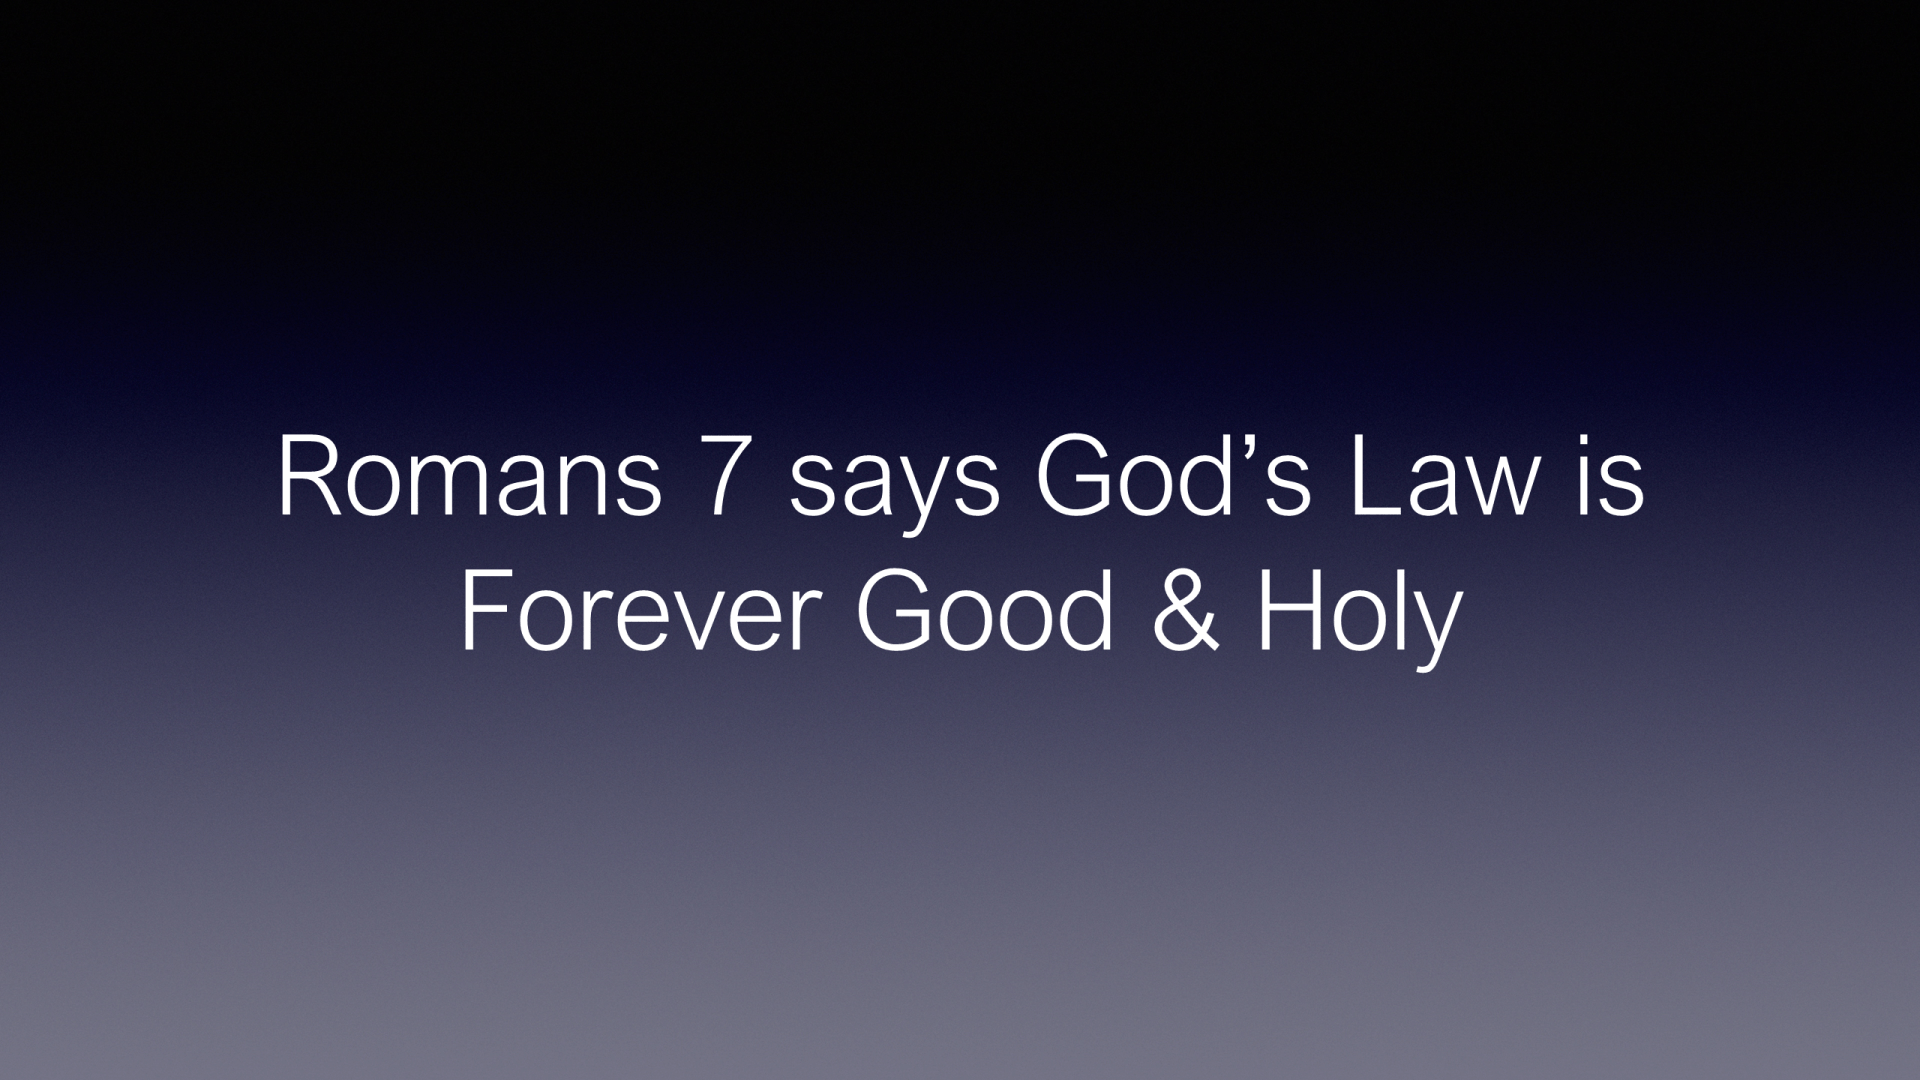 HFG-12 - Our God - Revelaled Through His Attributes, Reflected in His Law, and Illustrated by His Ceremonies (10)